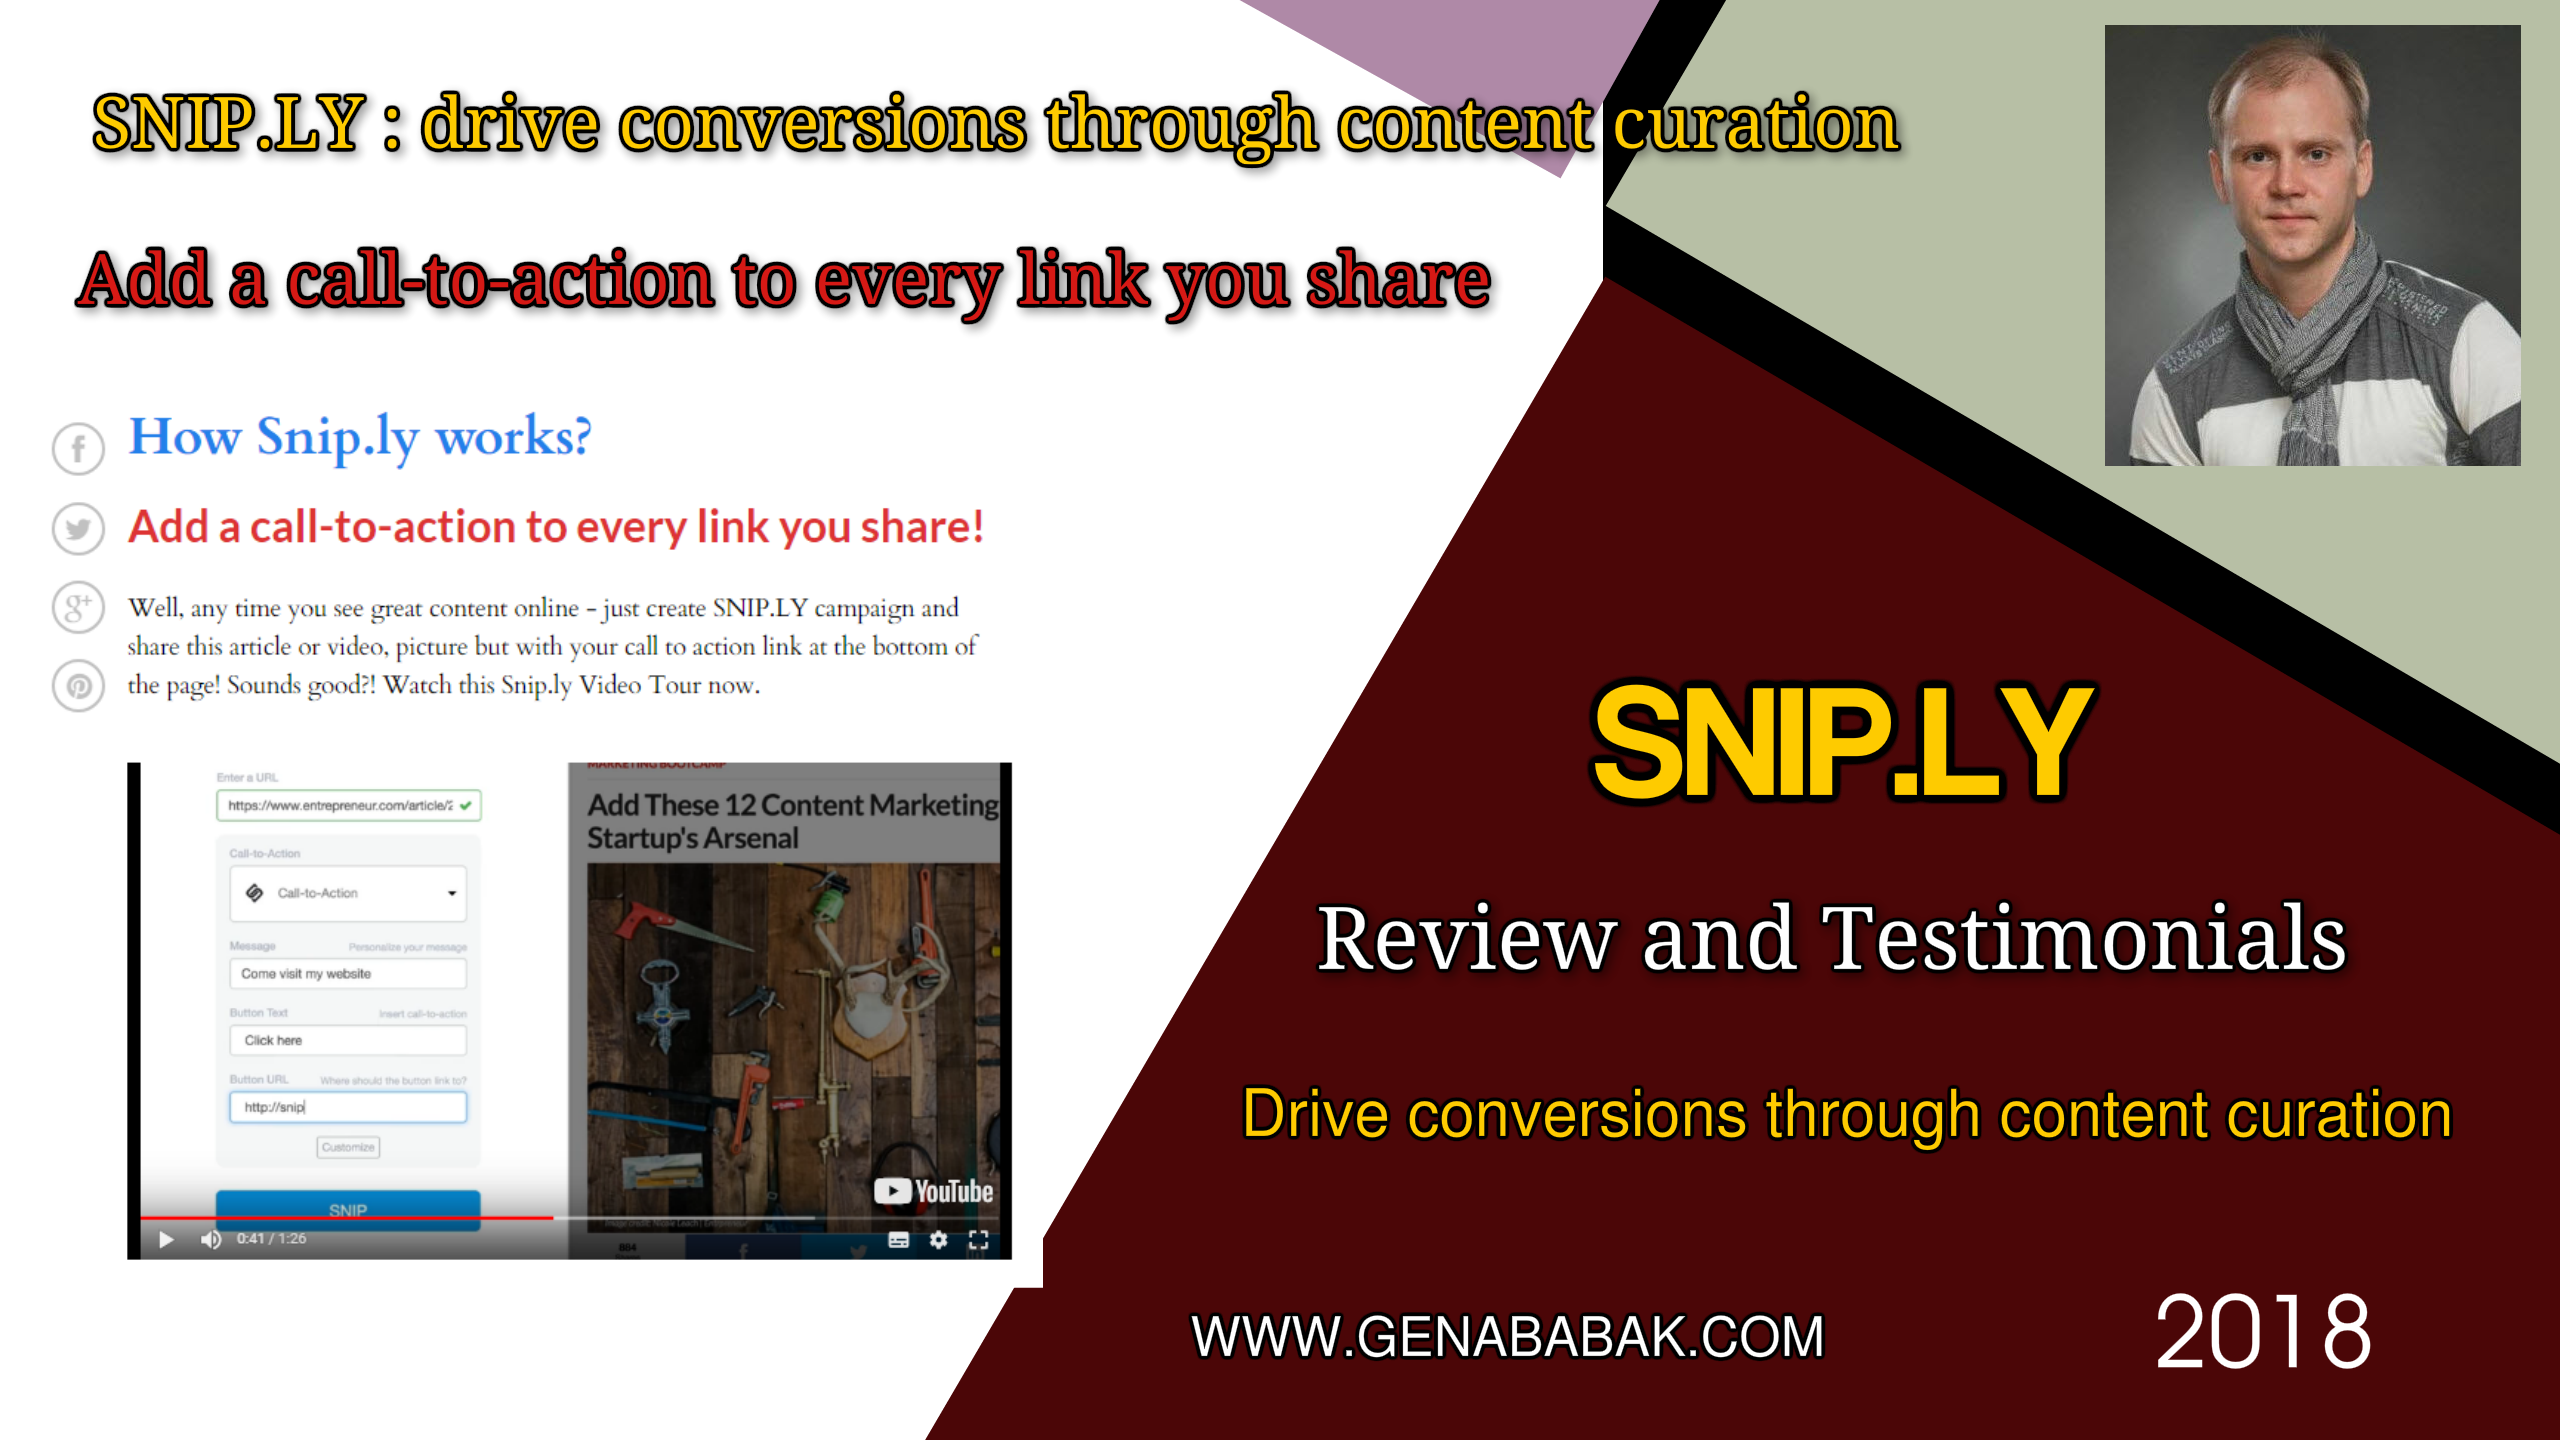 SINIPLY REVEIW AND TESTIMONIAL